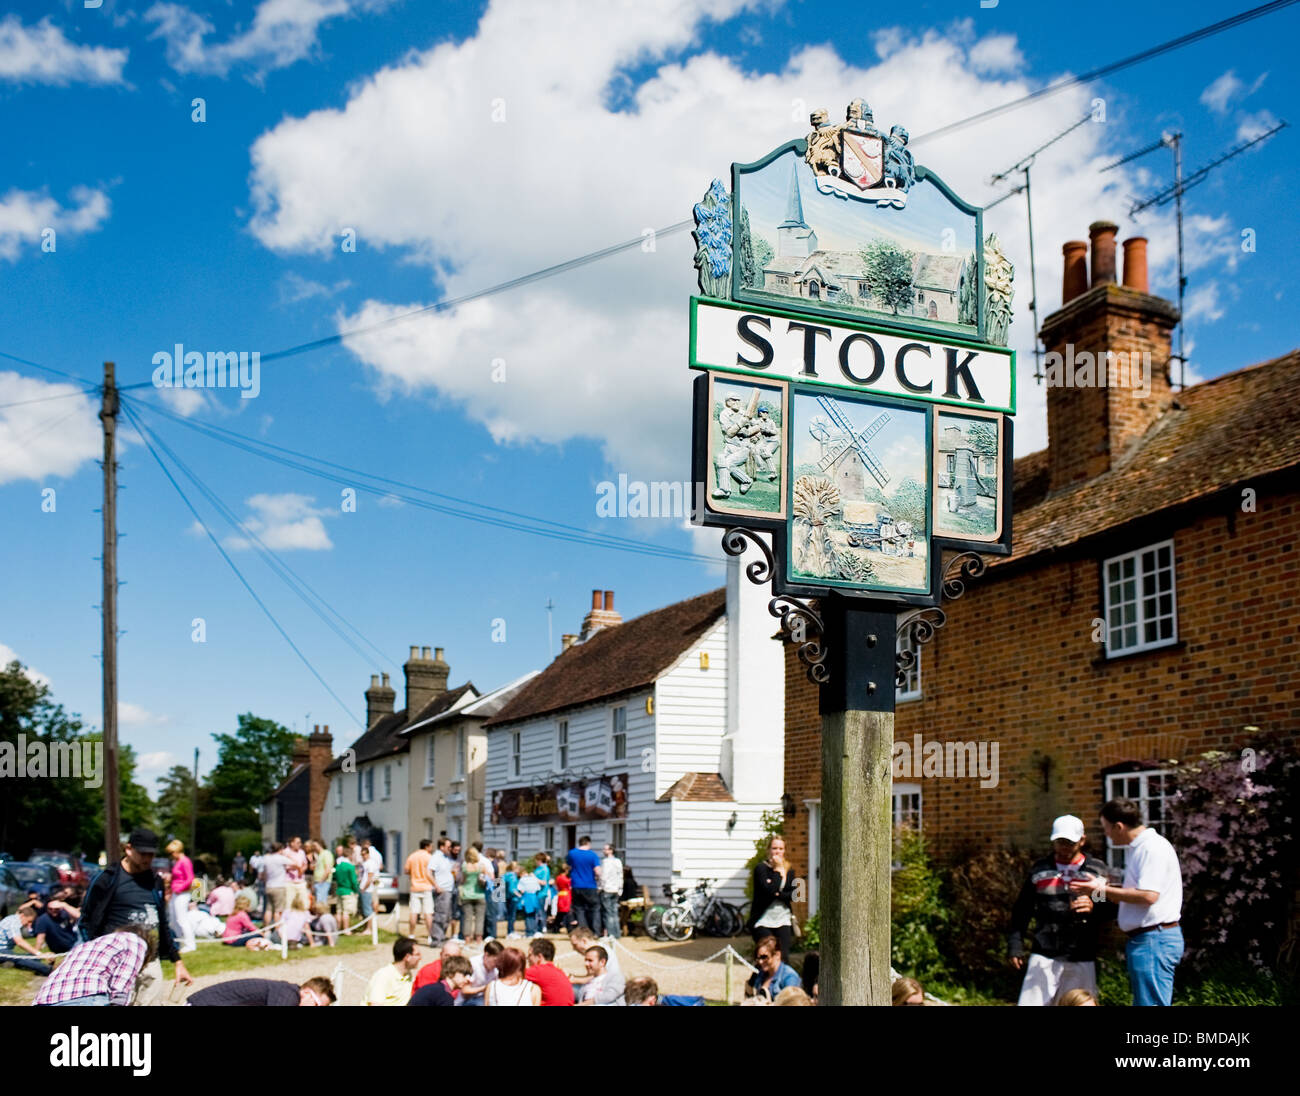 The Stock Village sign in Essex.  Photo by Gordon Scammell - Stock Image